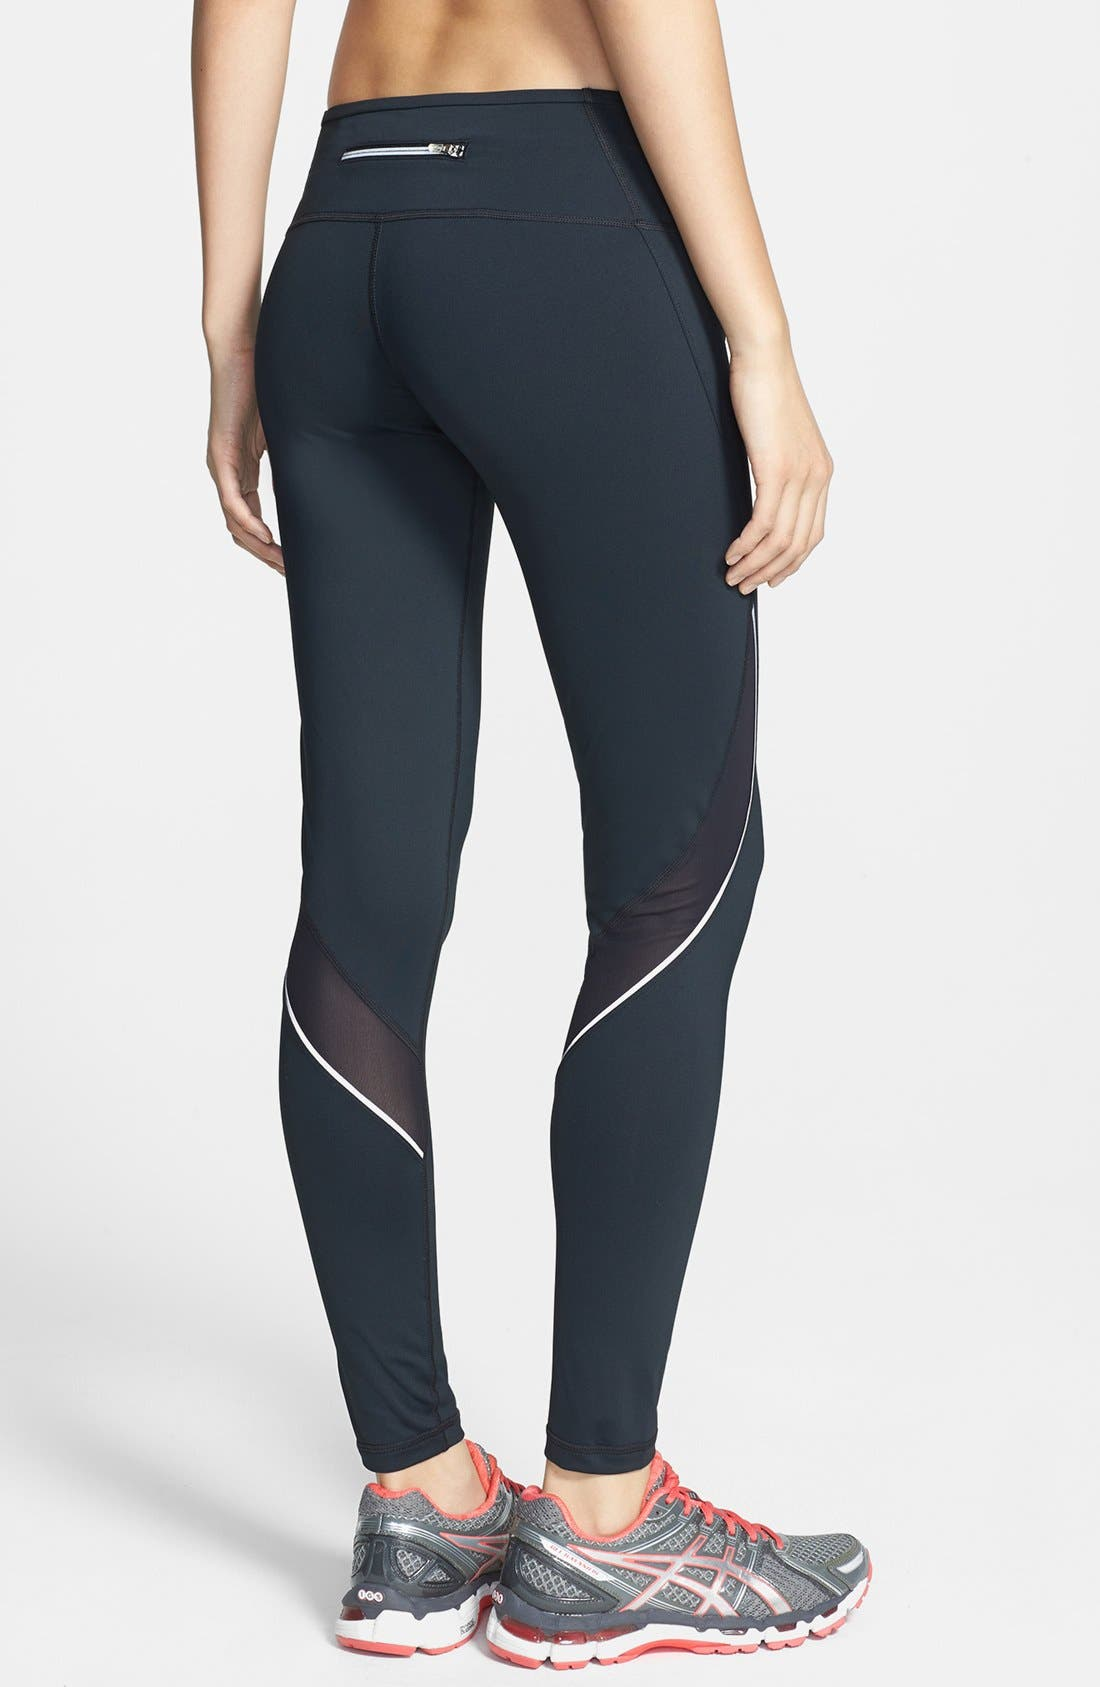 Alternate Image 1 Selected - Zella 'Perfect Run' Running Tights